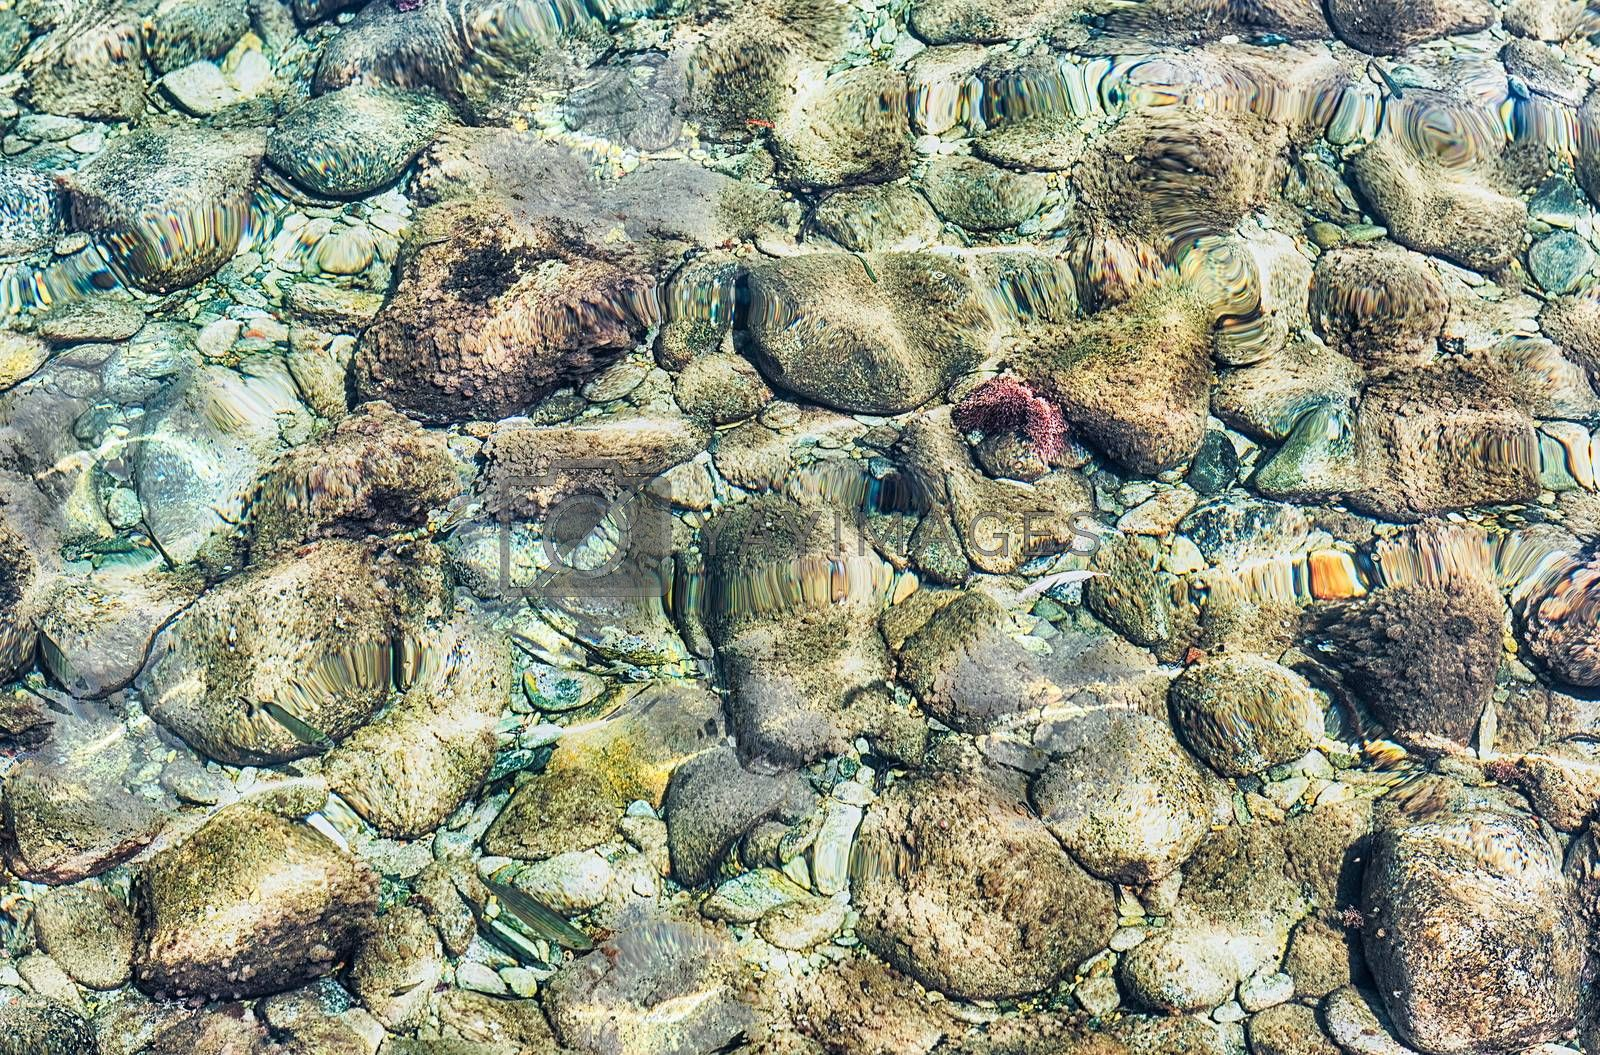 Underwater pebbles at the seaside. May be used as background